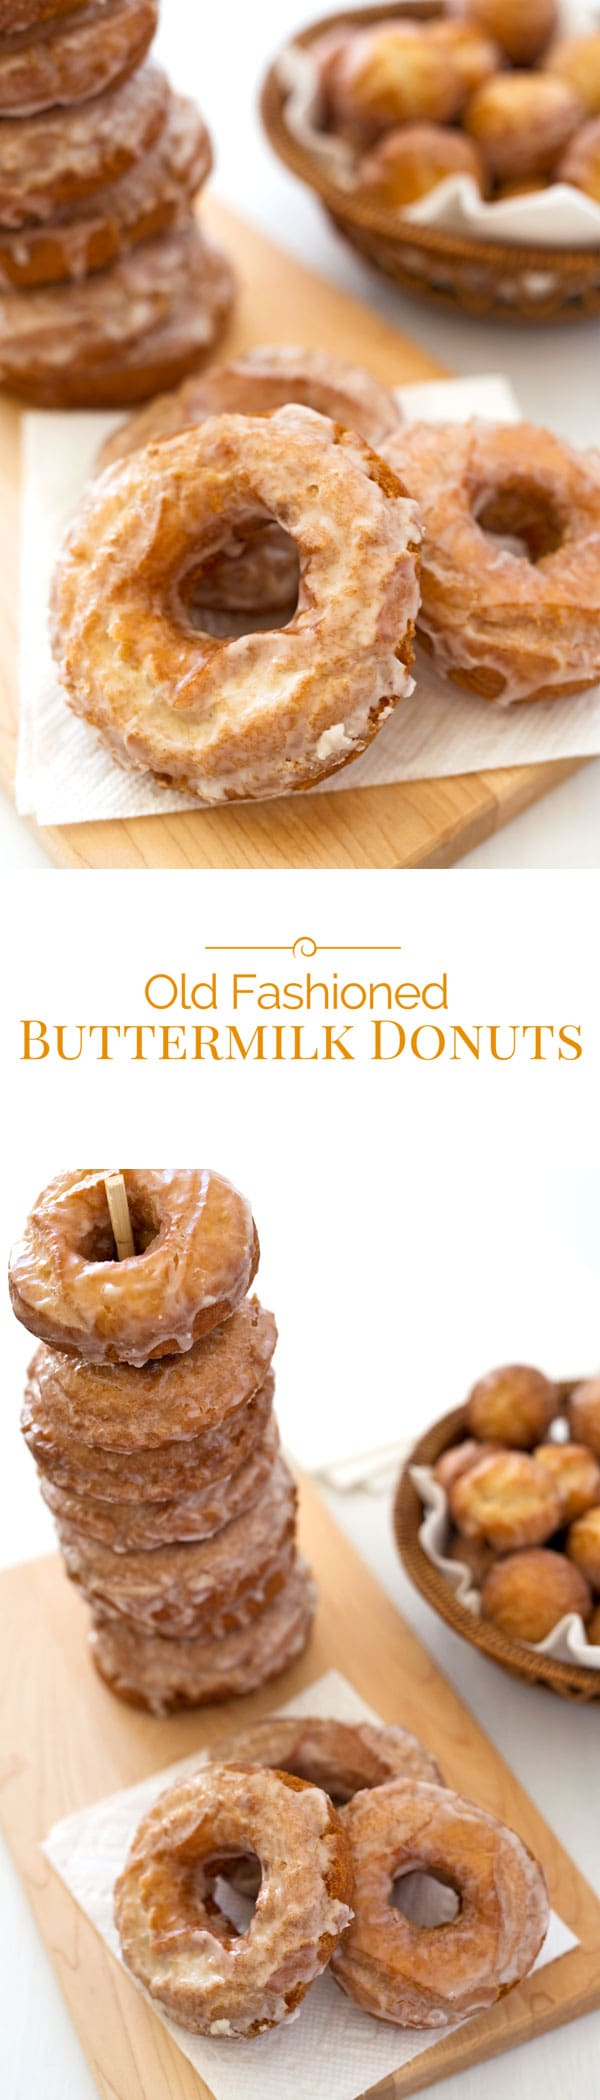 Old-Fashioned-Buttermilk-Donut-Pinterest-Collage